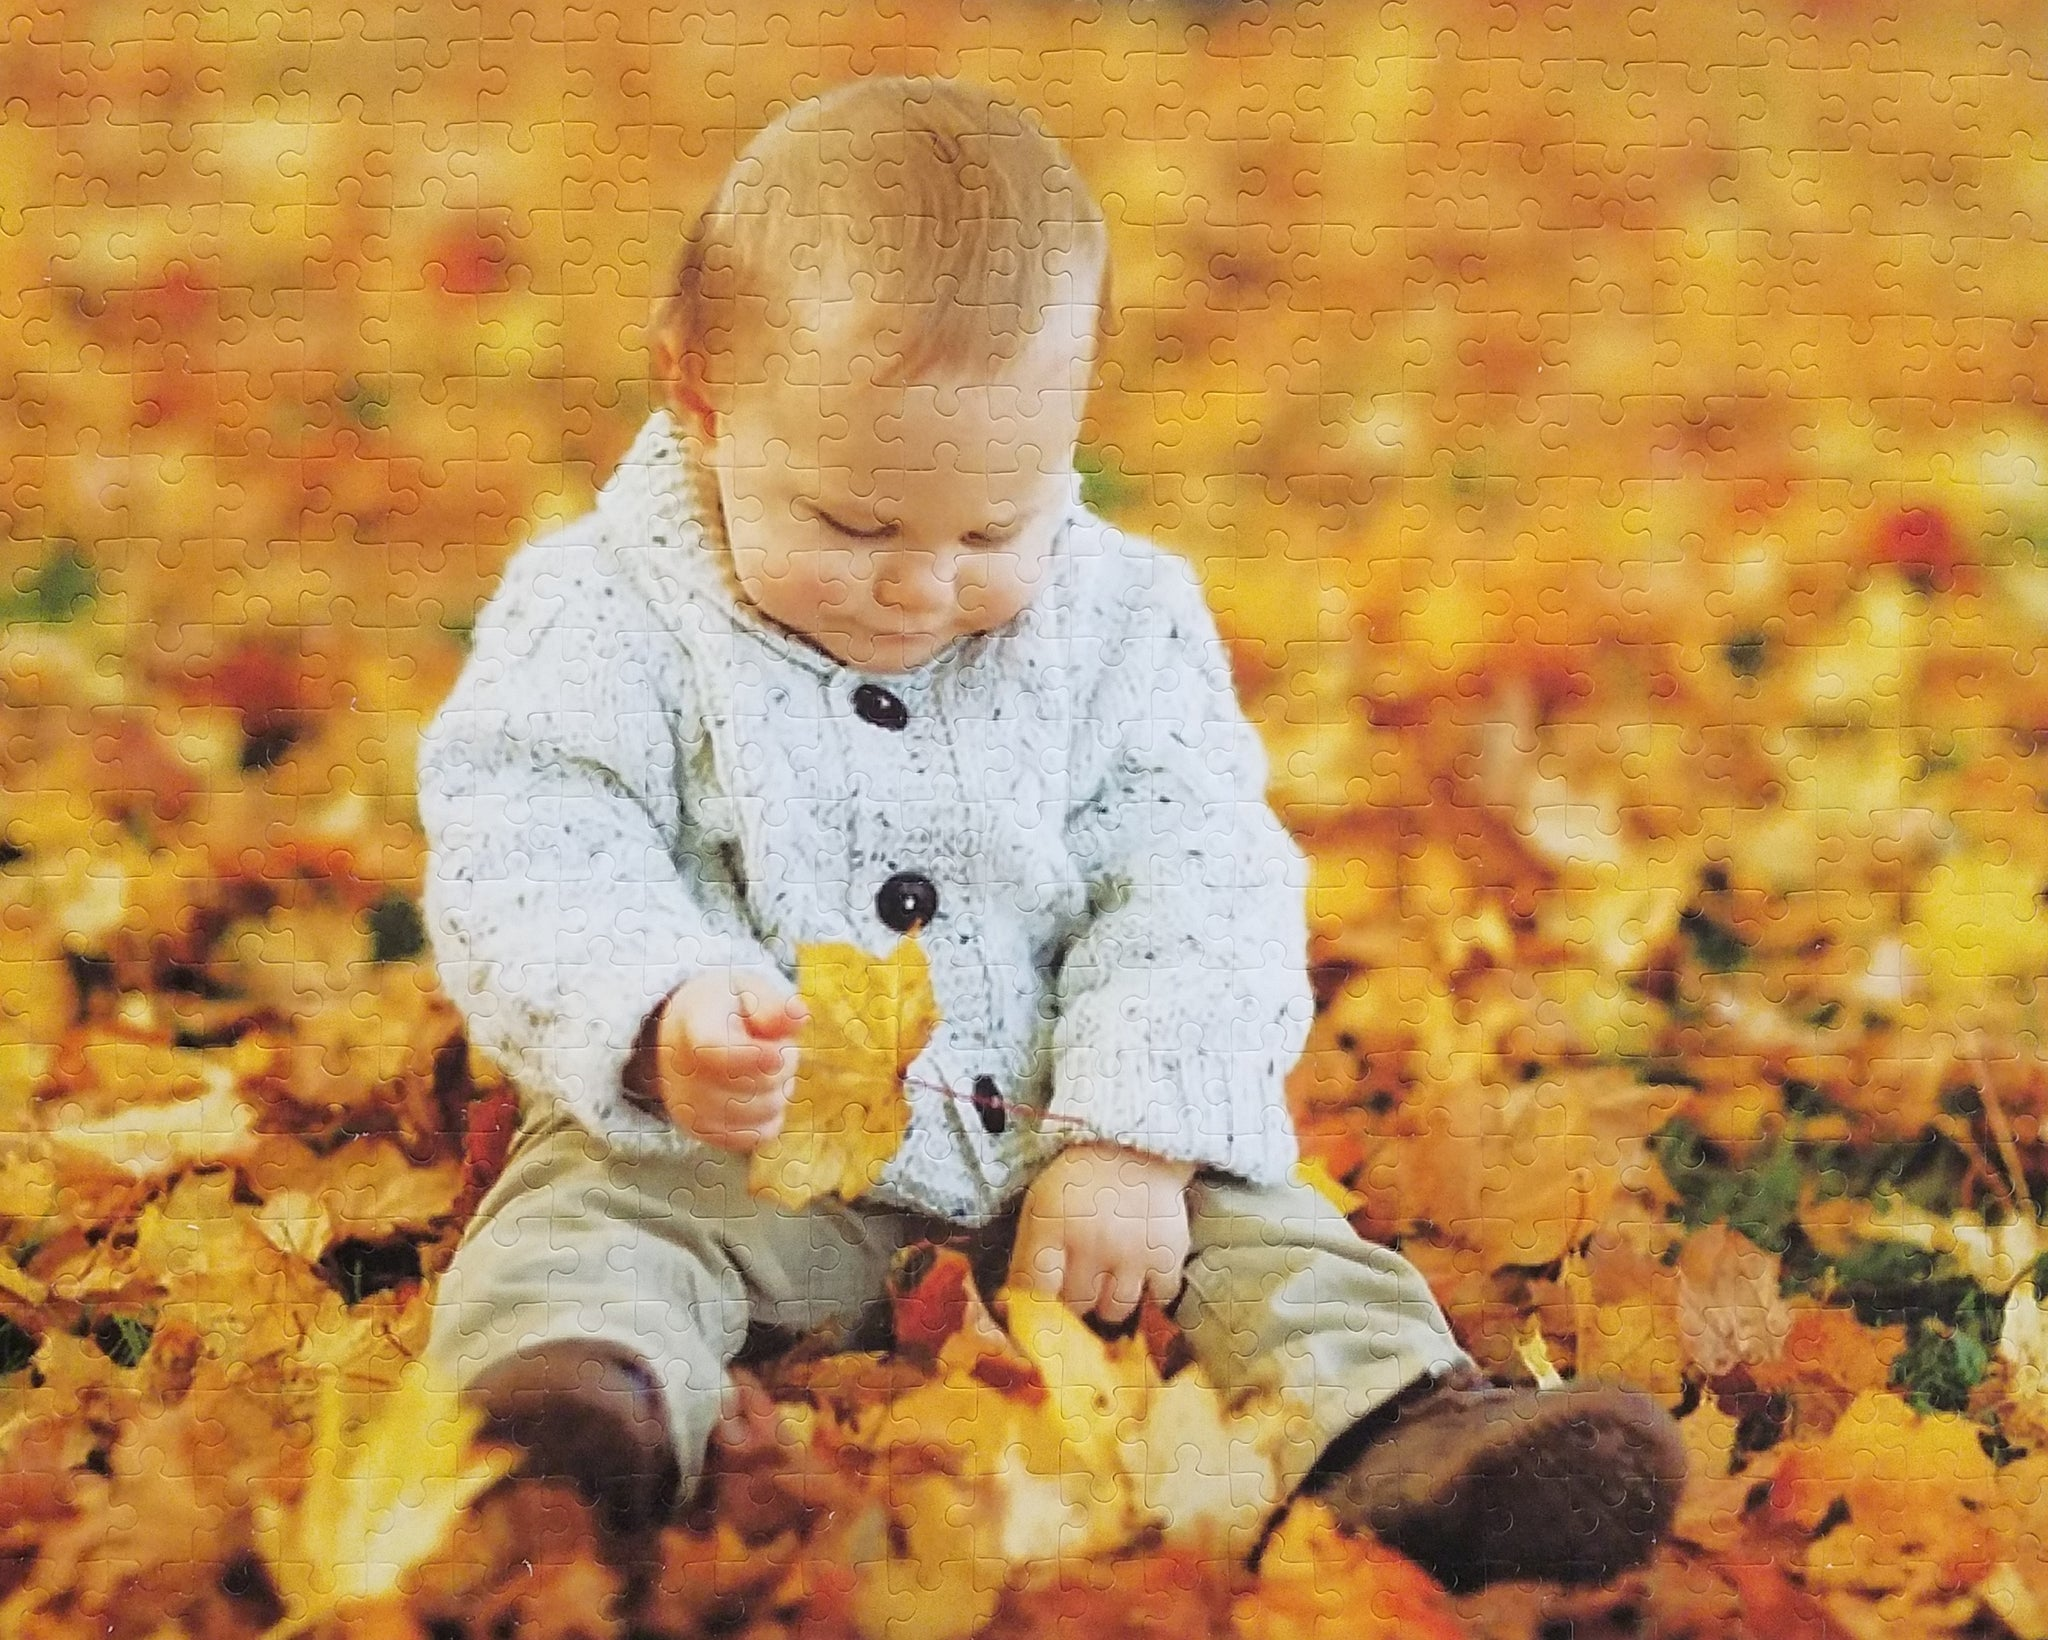 500 piece custom jigsaw puzzle of boy playing in yellow leaves - The Missing Piece Puzzle Company